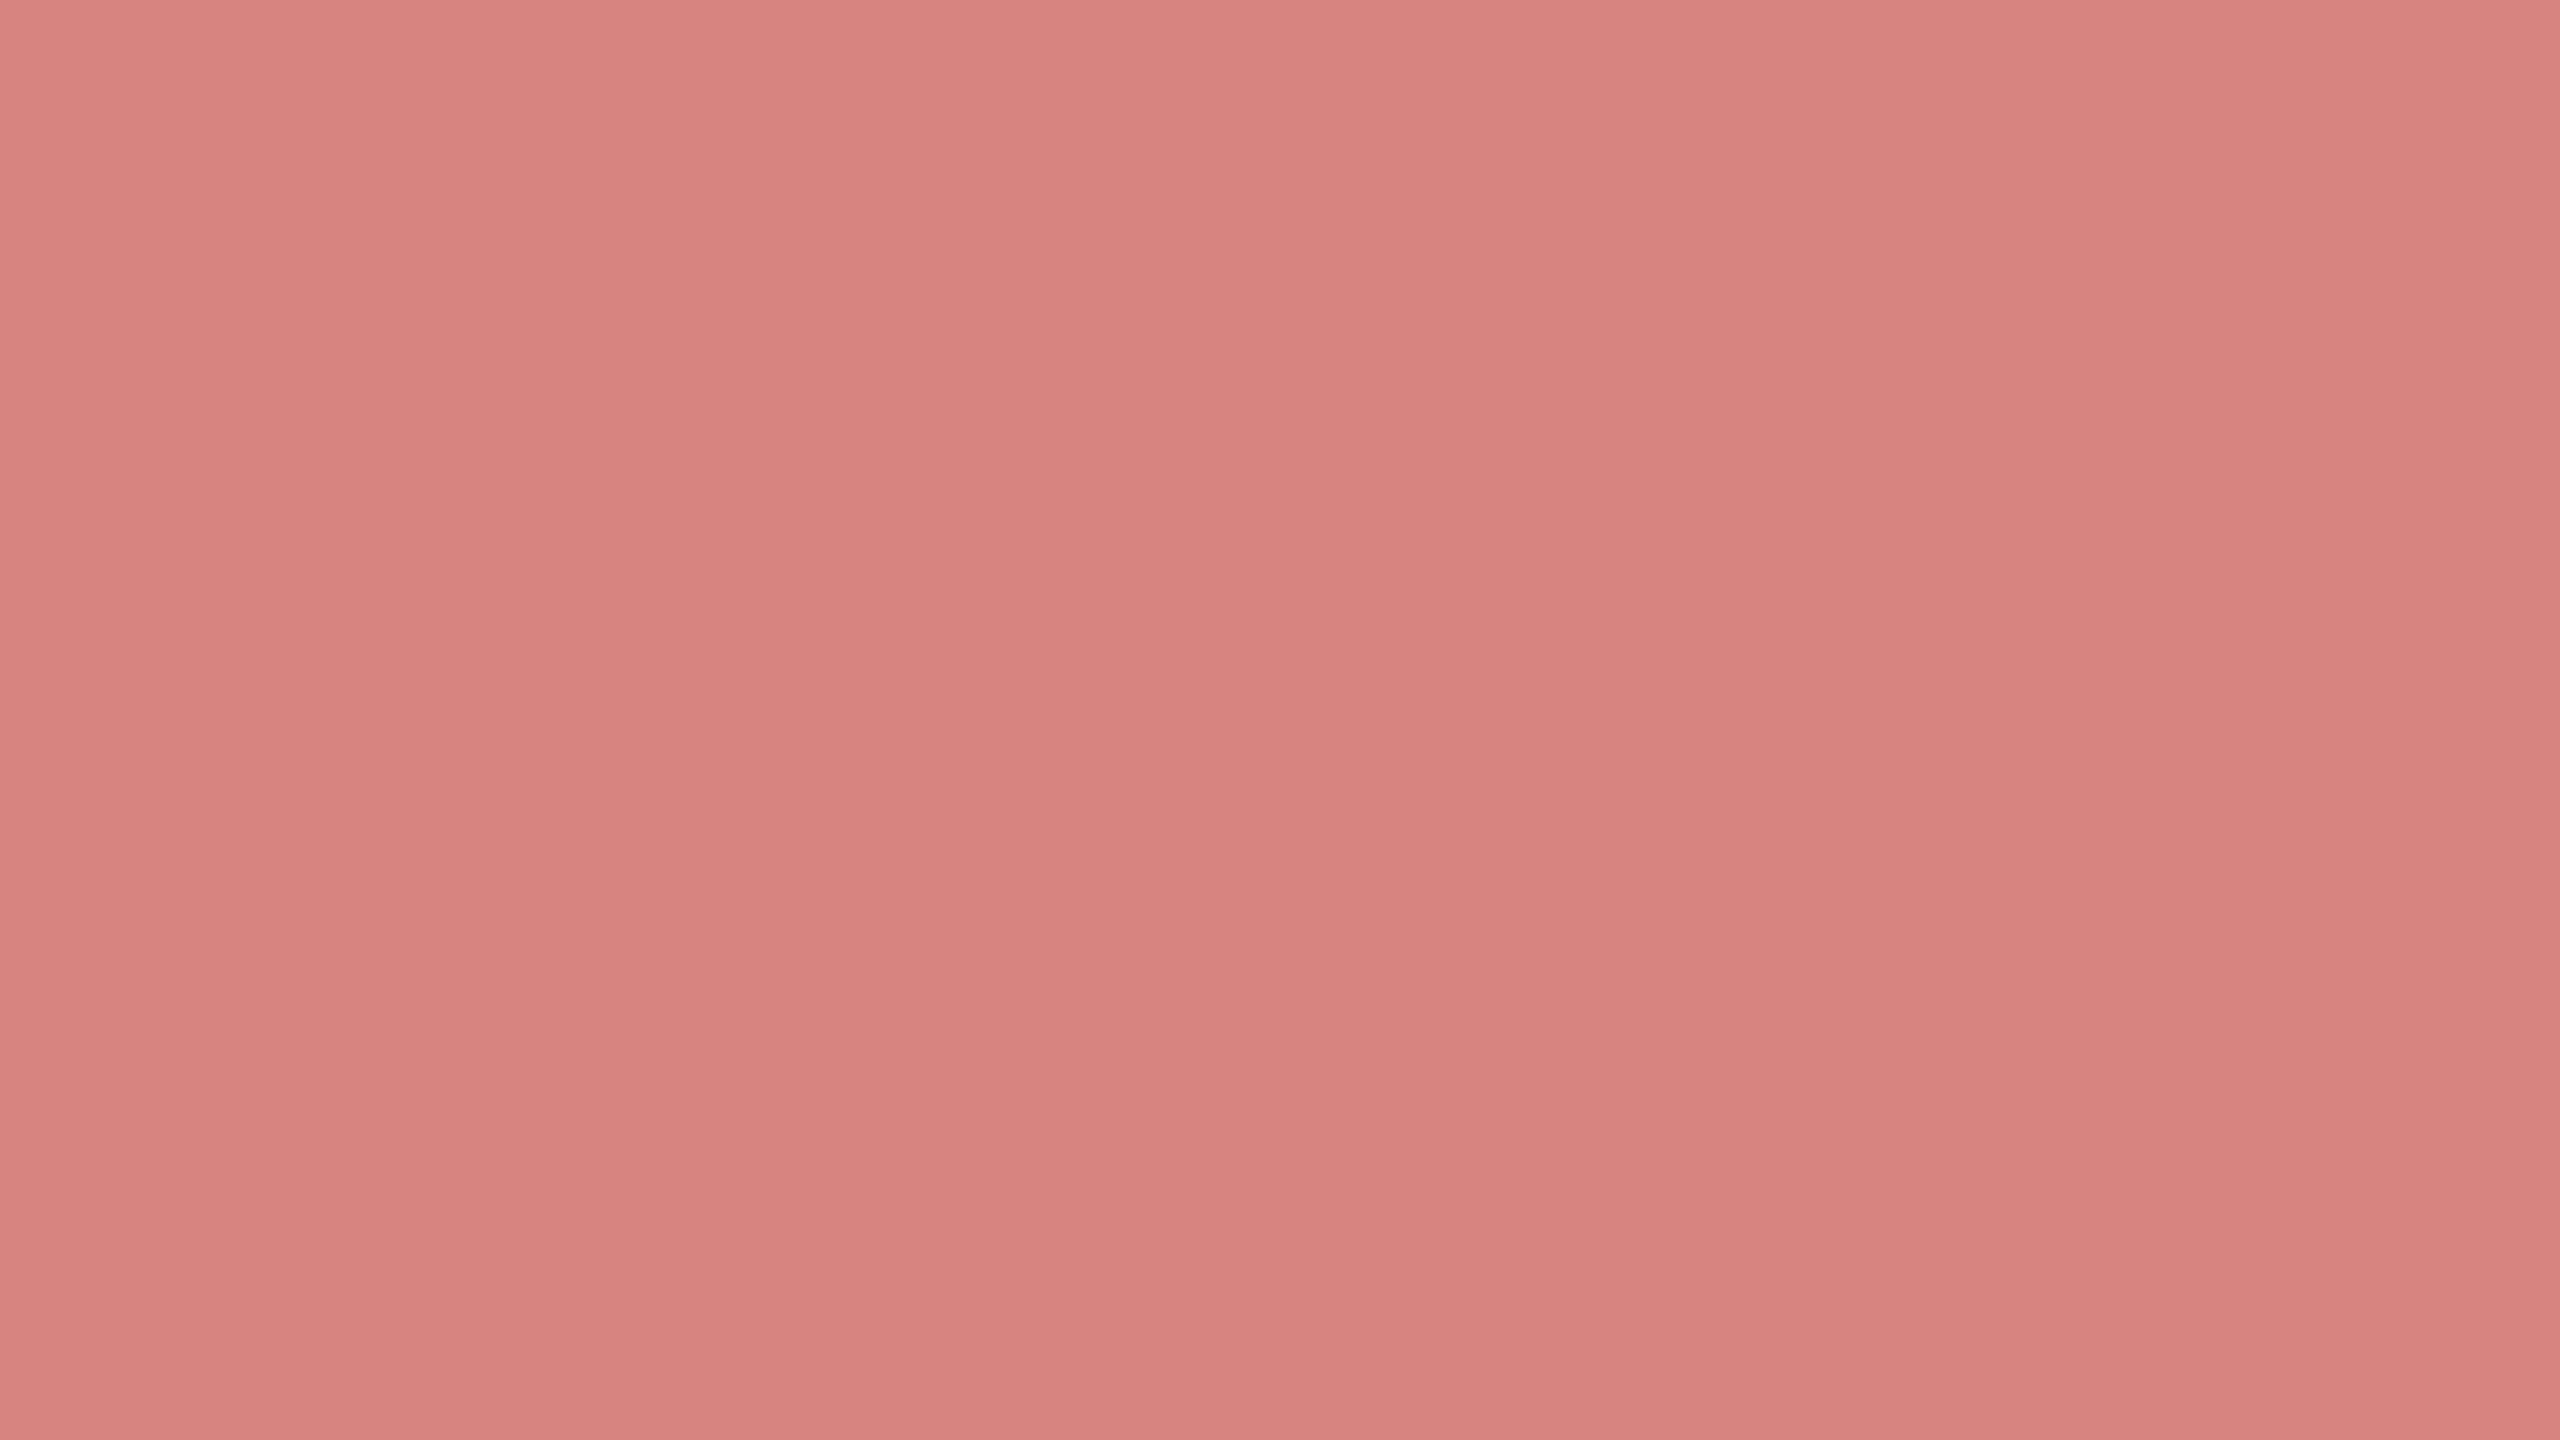 2560x1440 New York Pink Solid Color Background